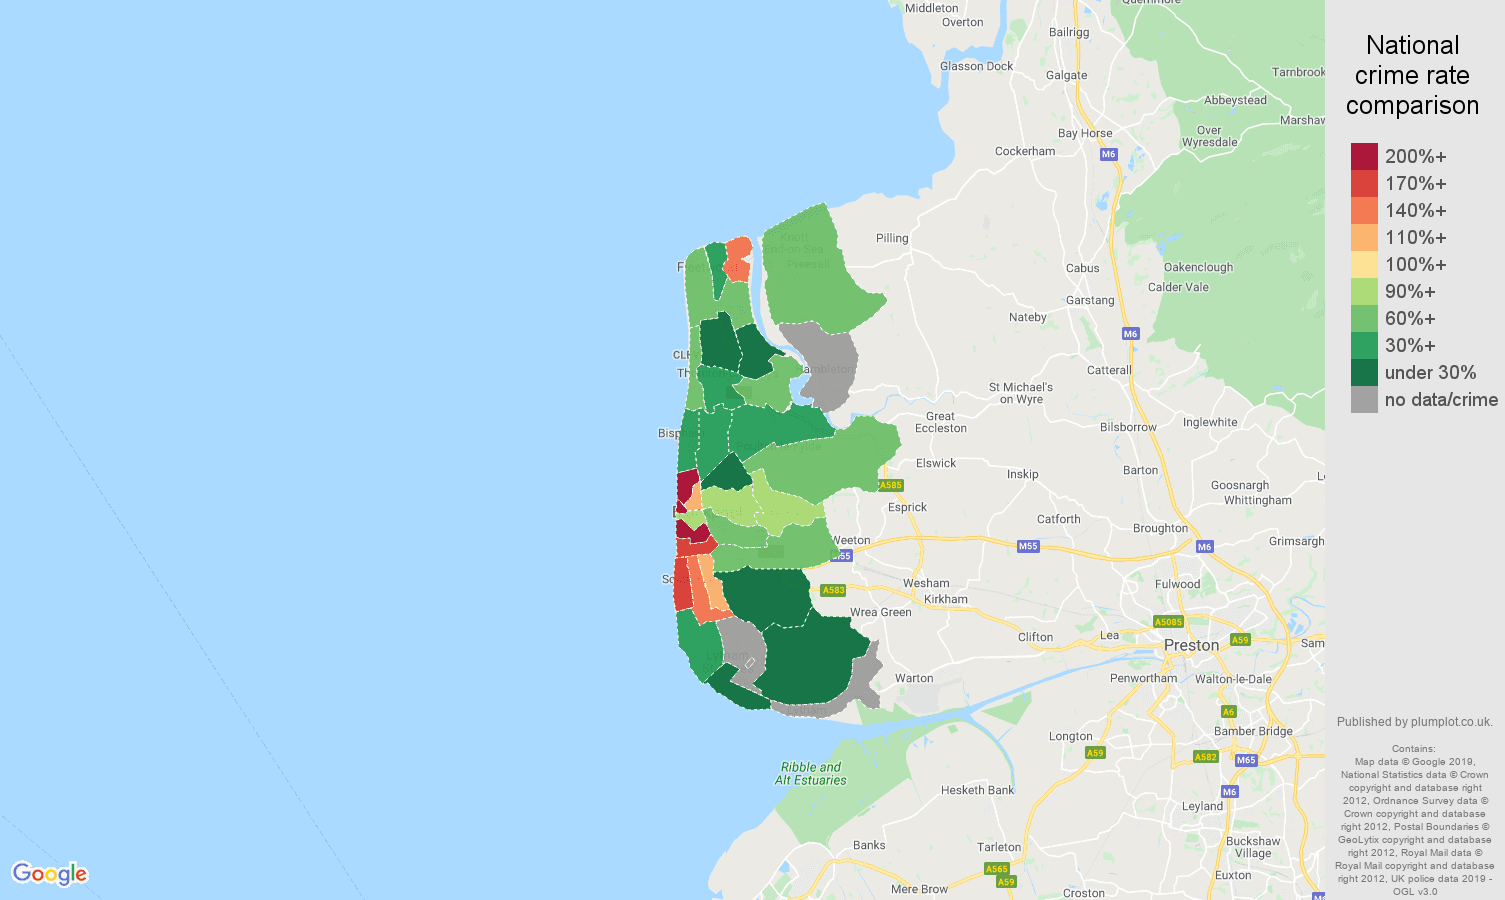 Blackpool possession of weapons crime rate comparison map